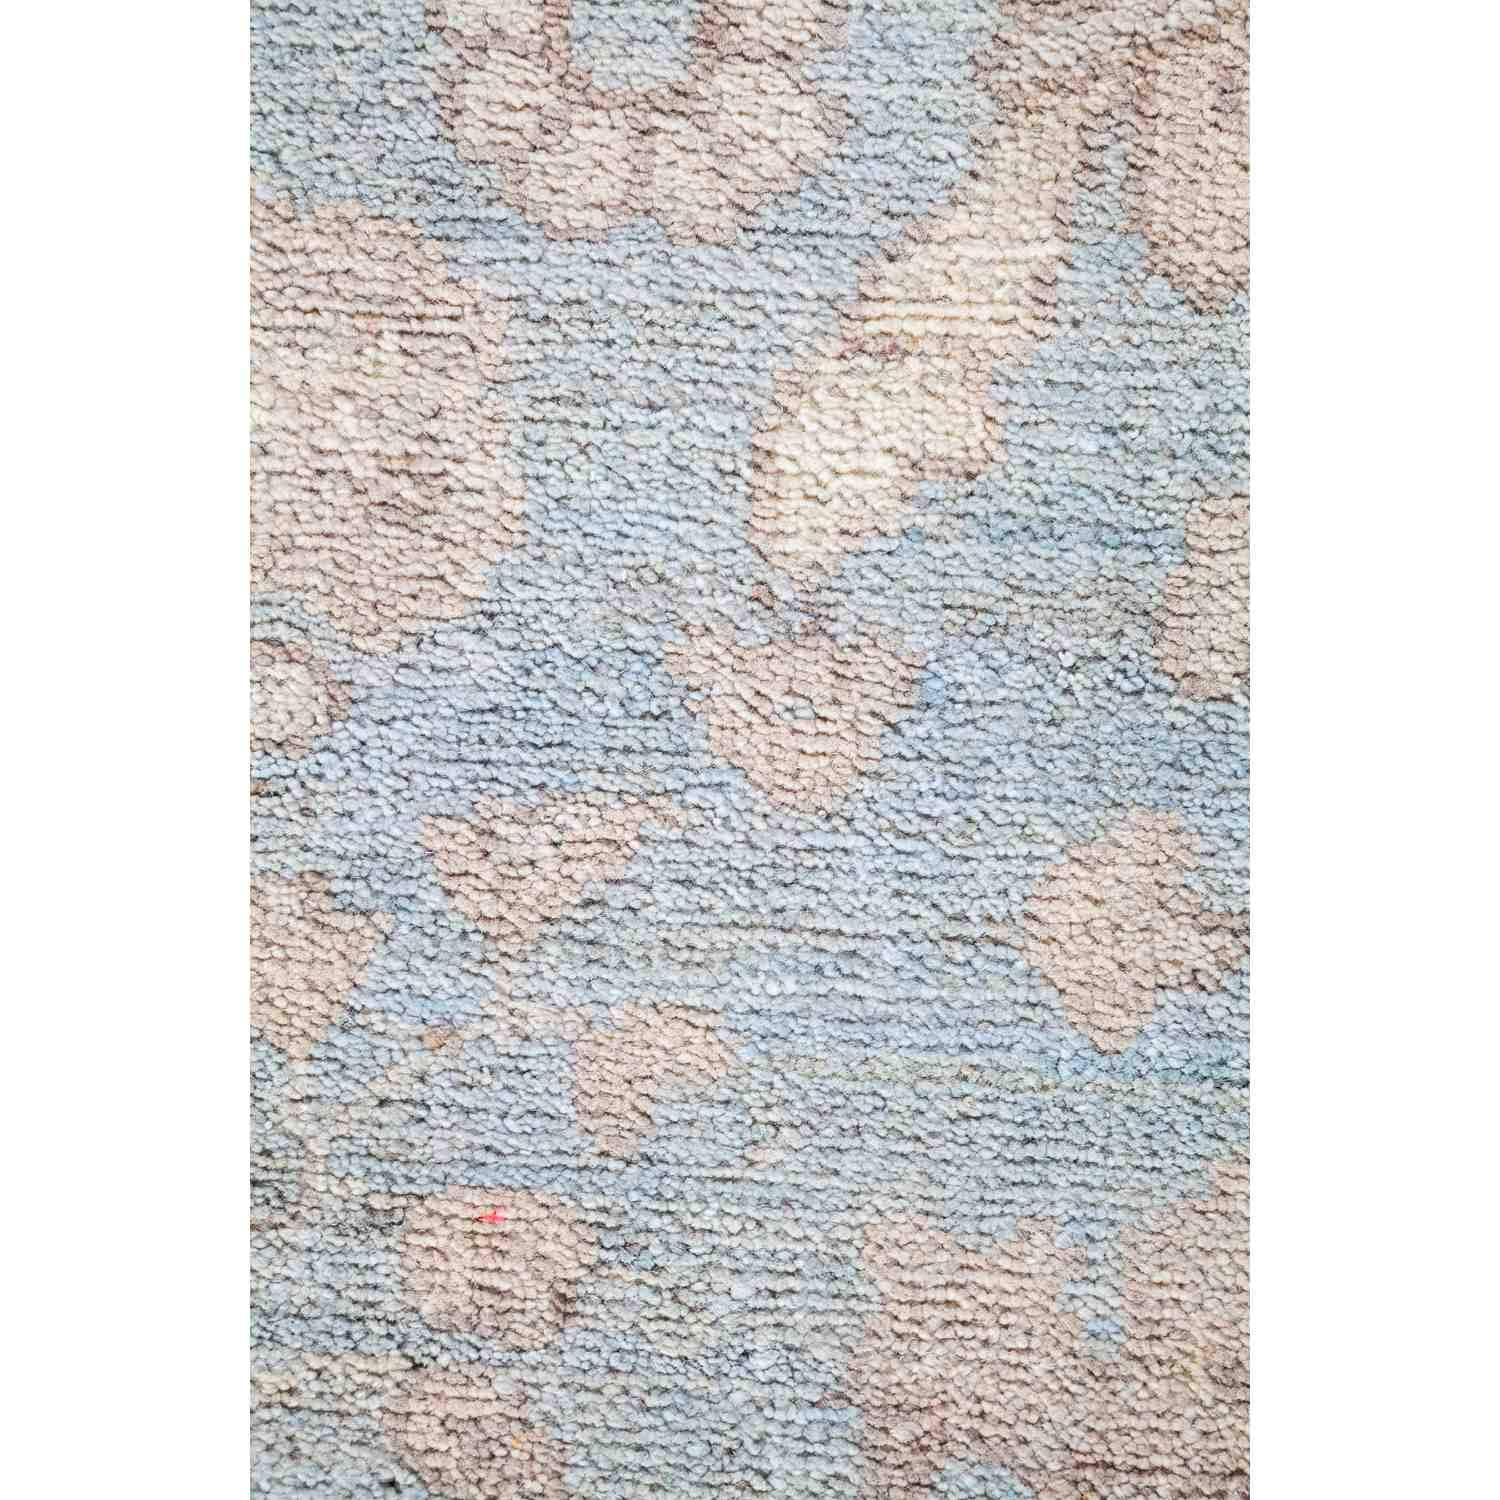 Stone Solo Rugs Silky Oushak Hand Knotted Area Rug 4 1 x 5 10